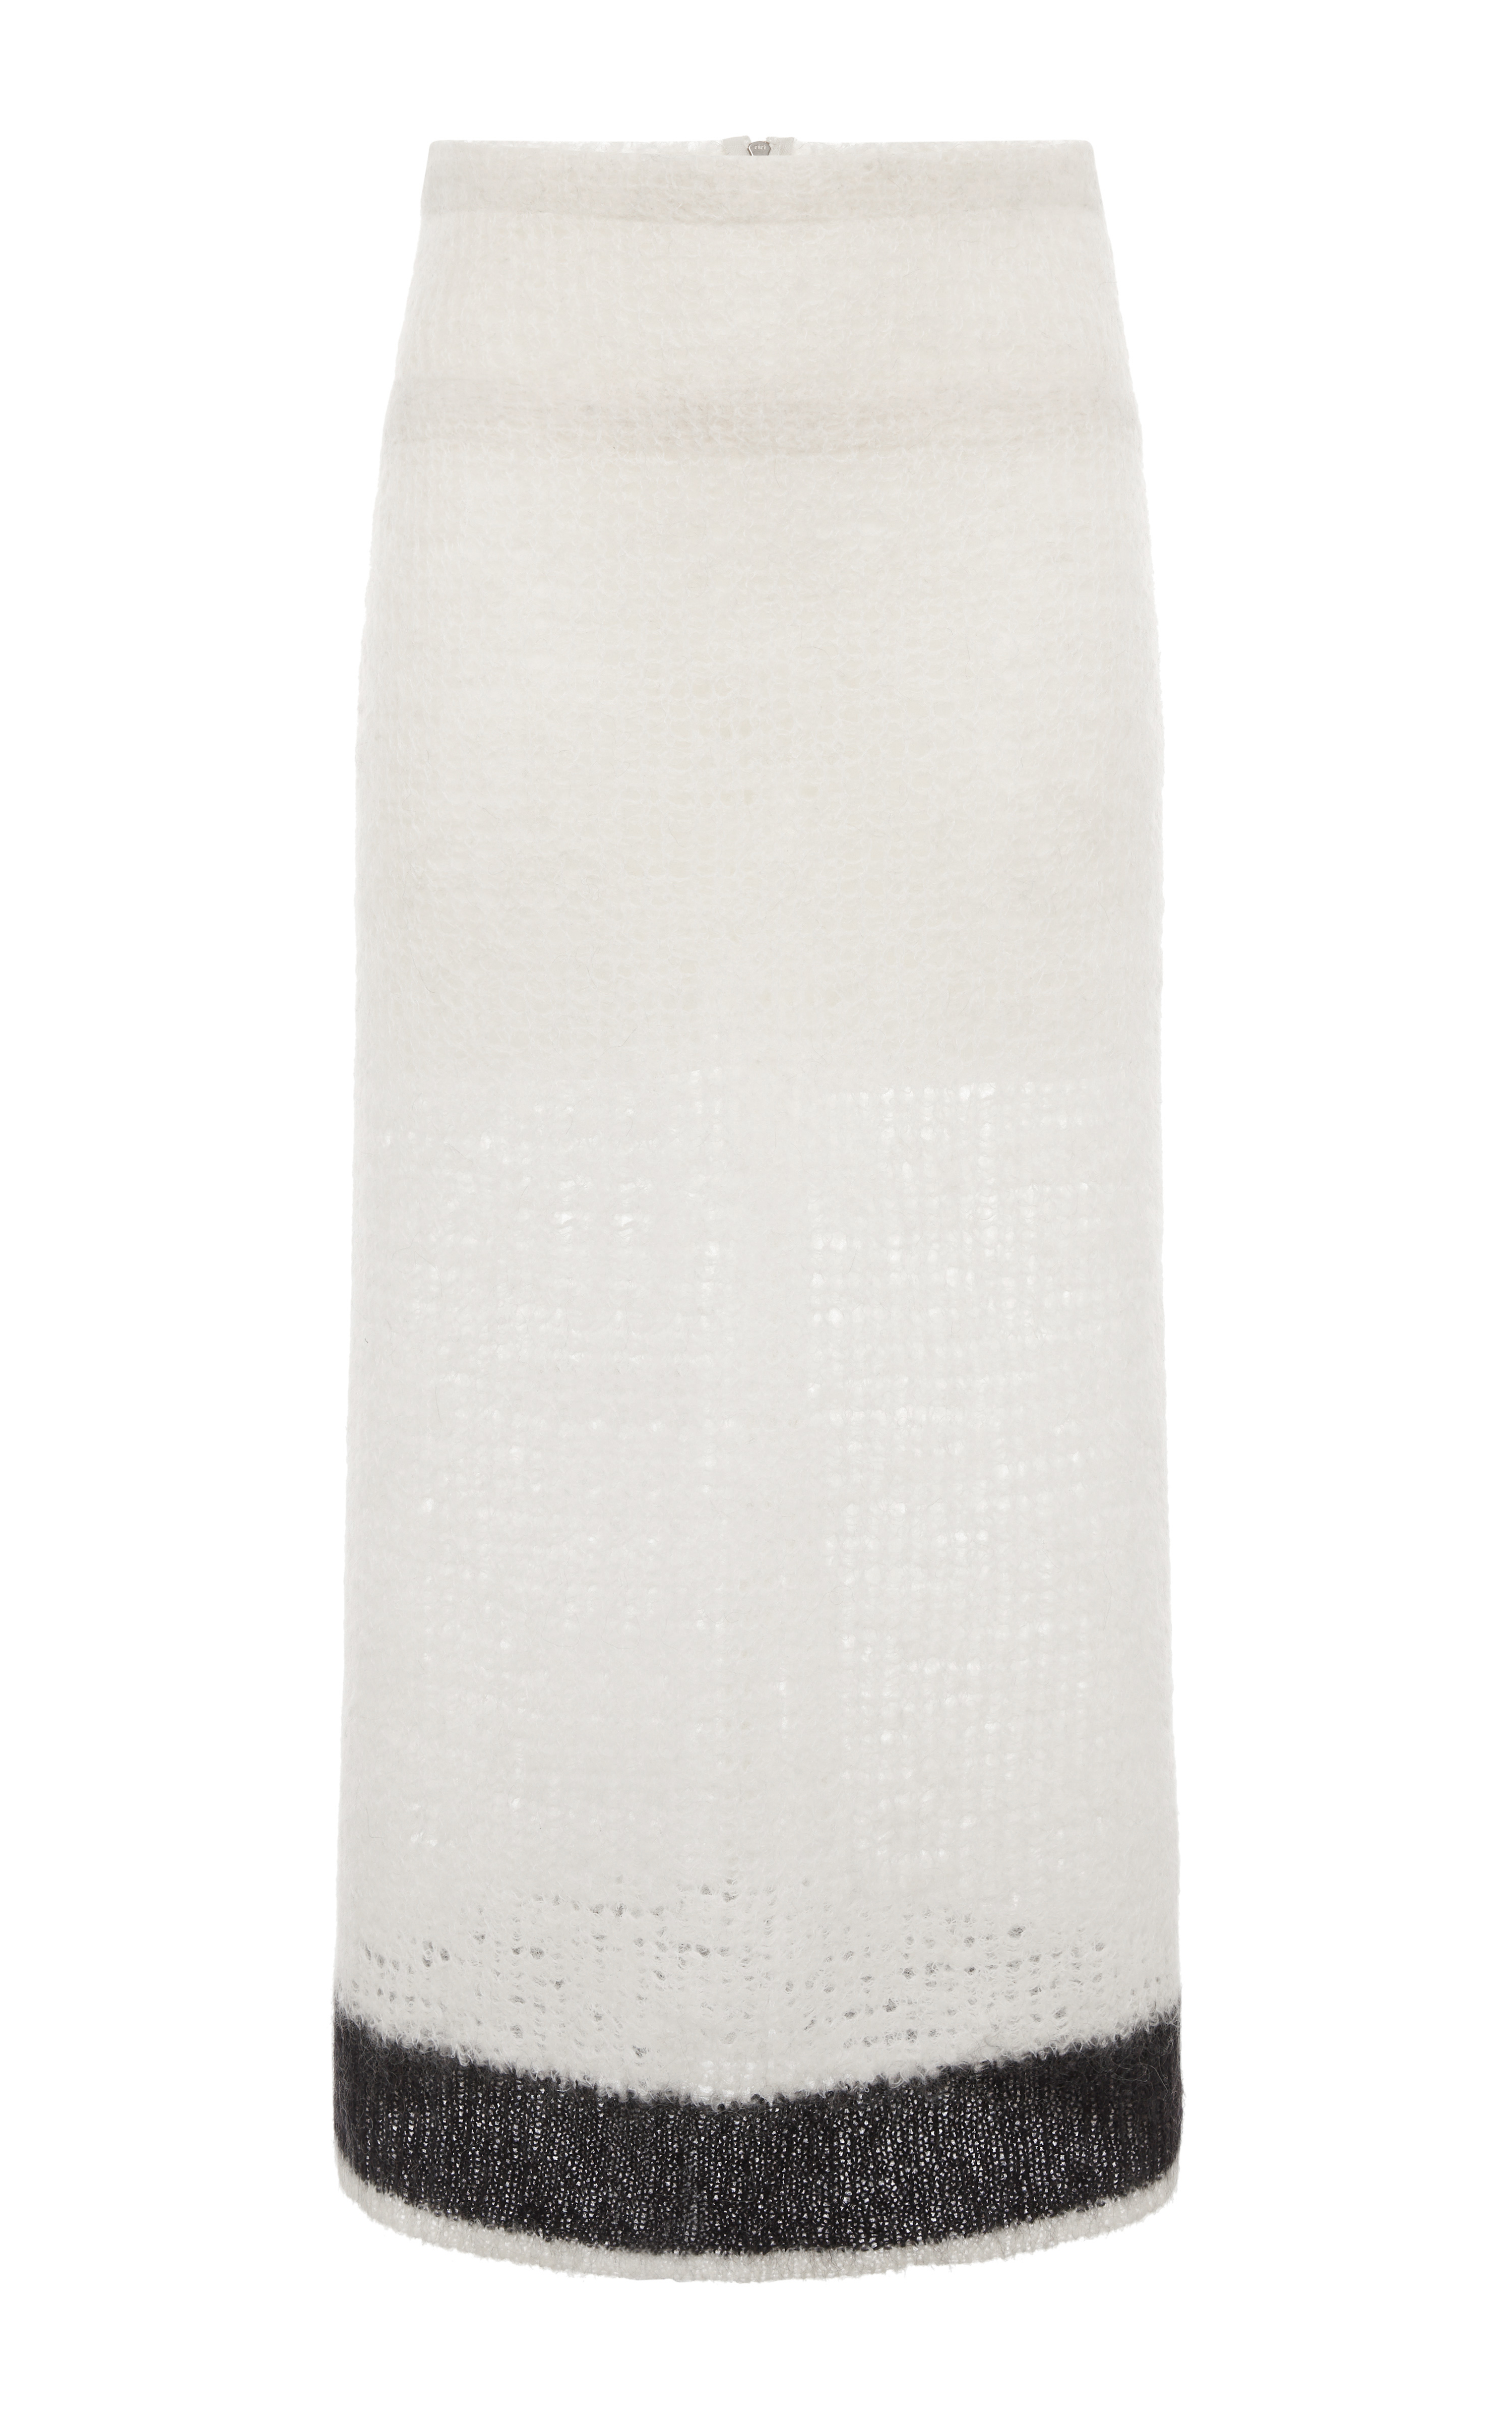 White and black mohair open weave knit tube skirt by calvin klein collection